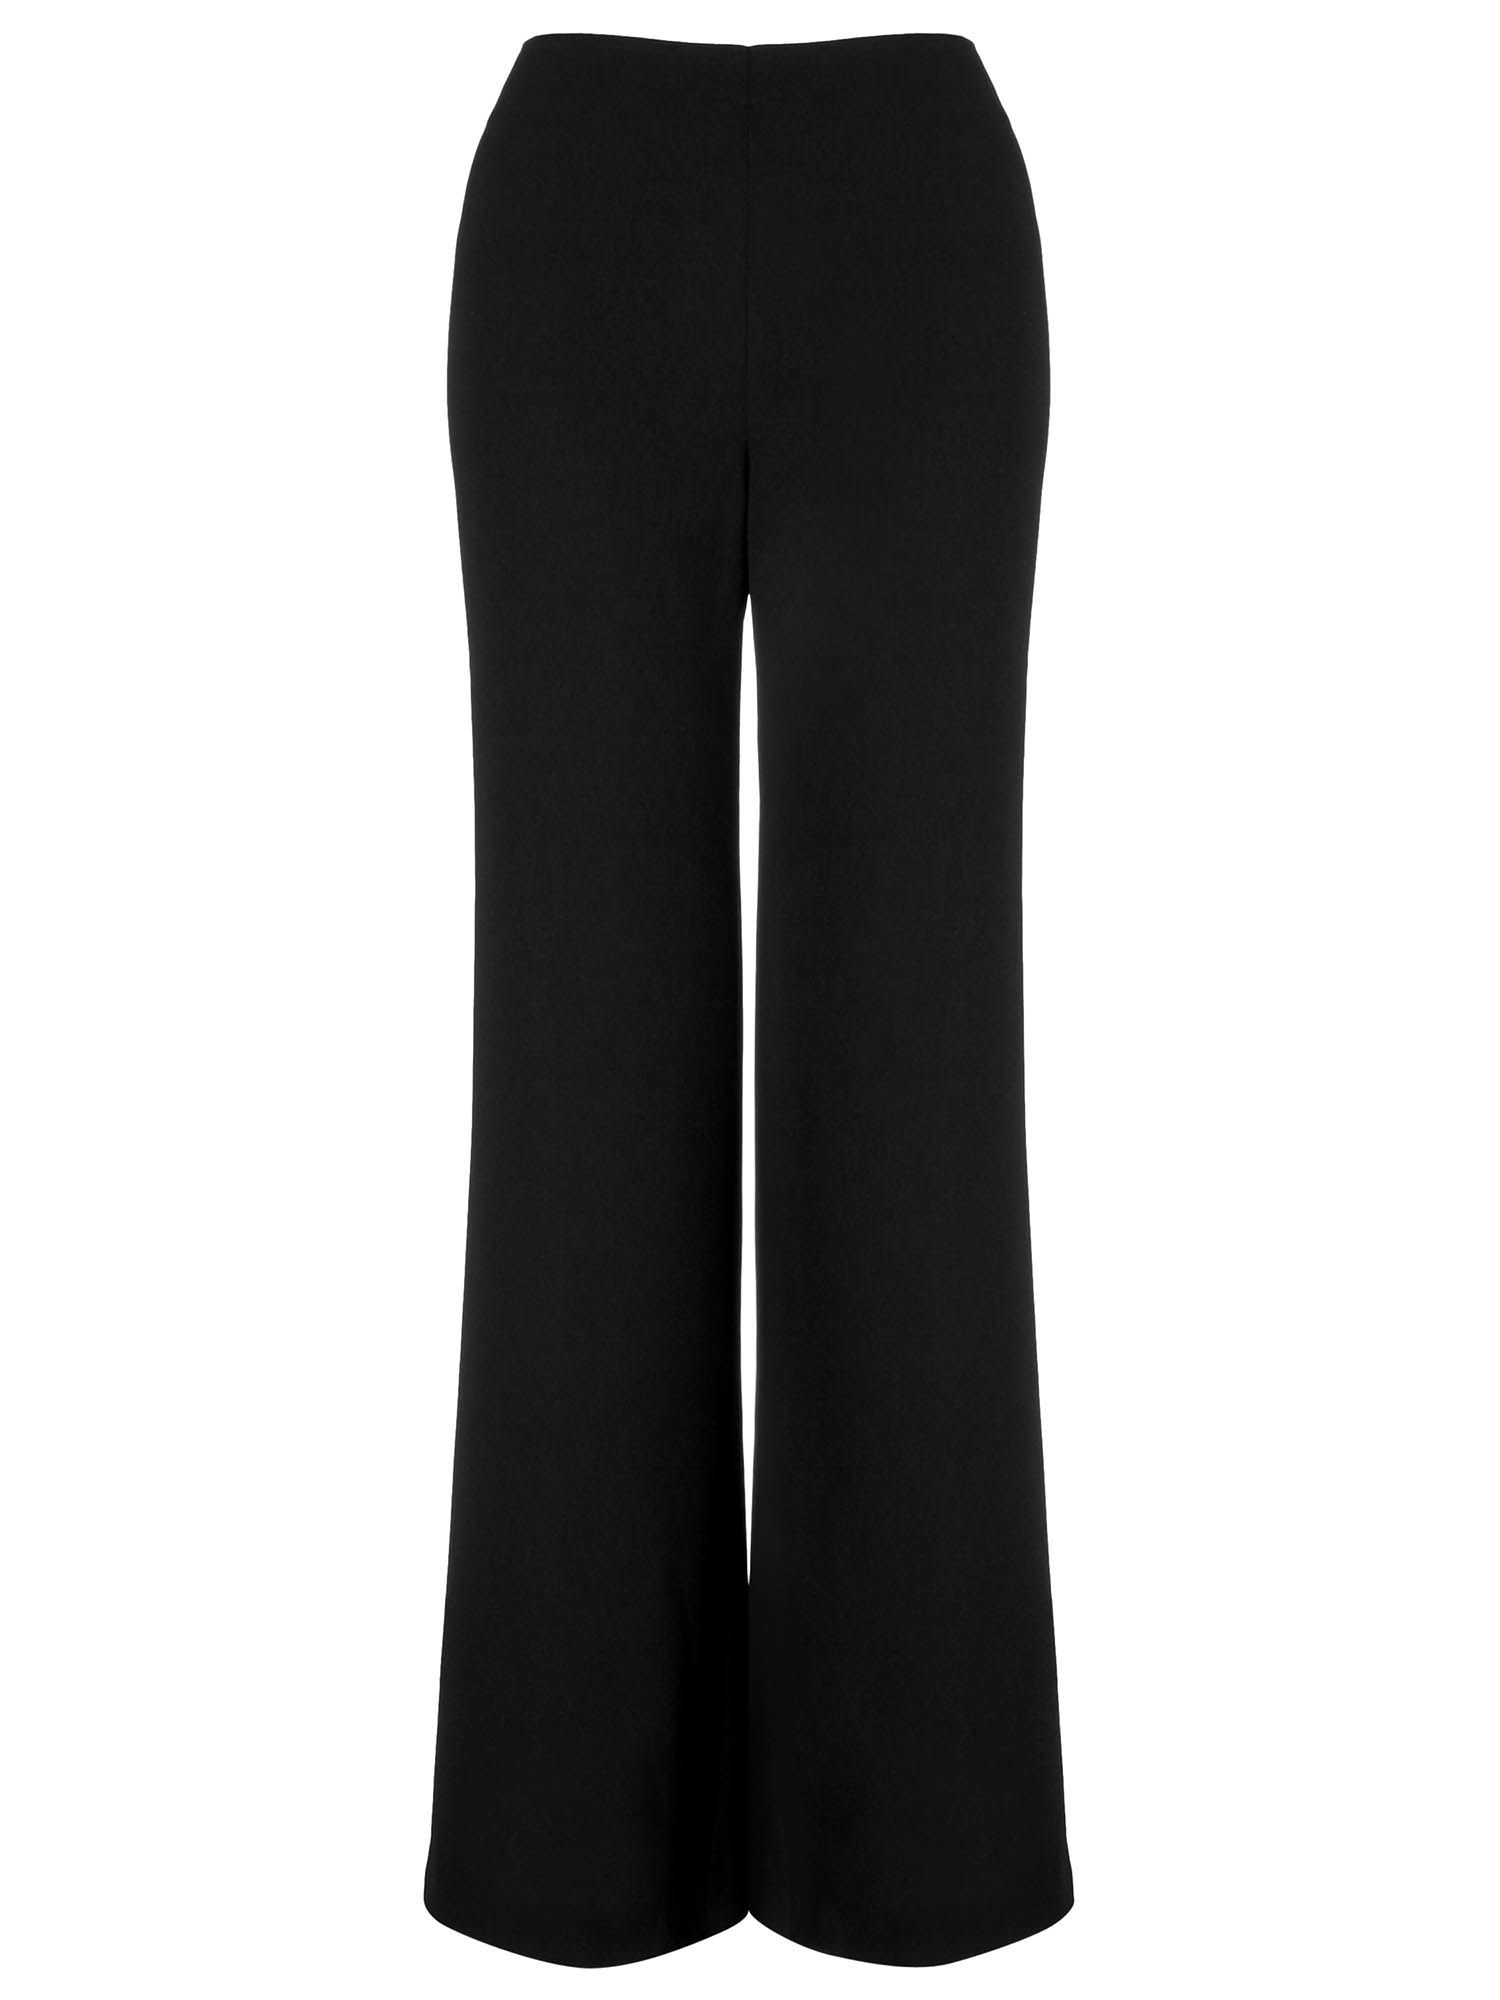 Ariella taylor trousers, Black